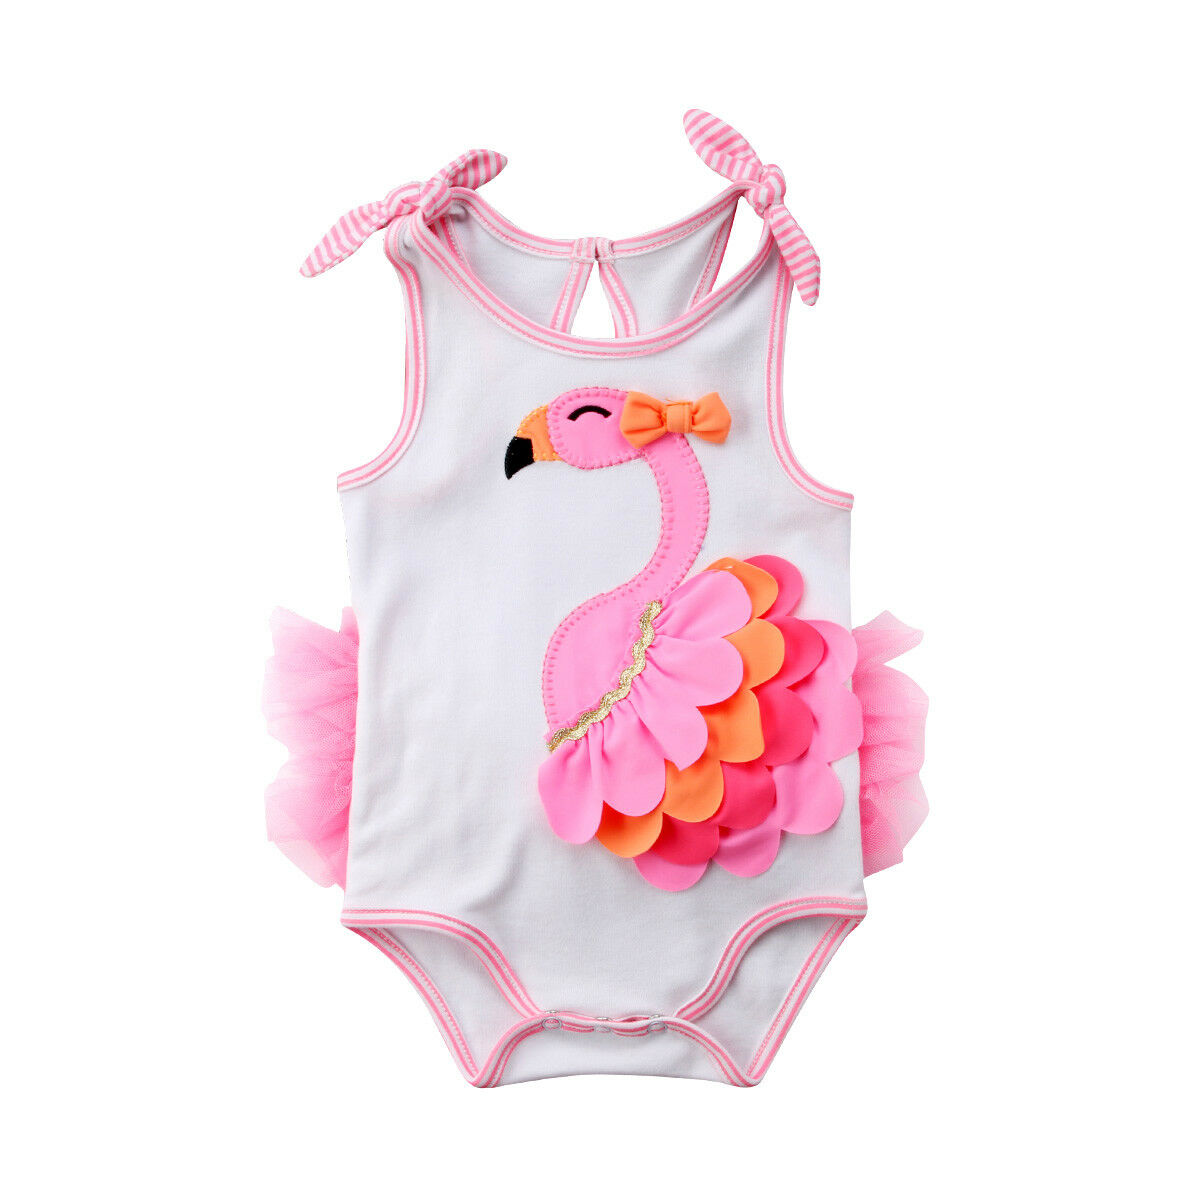 Newborn Kids Baby Girls Bikini Set Swimwear Swimsuit Bathing Suit Beachwear 0-18M